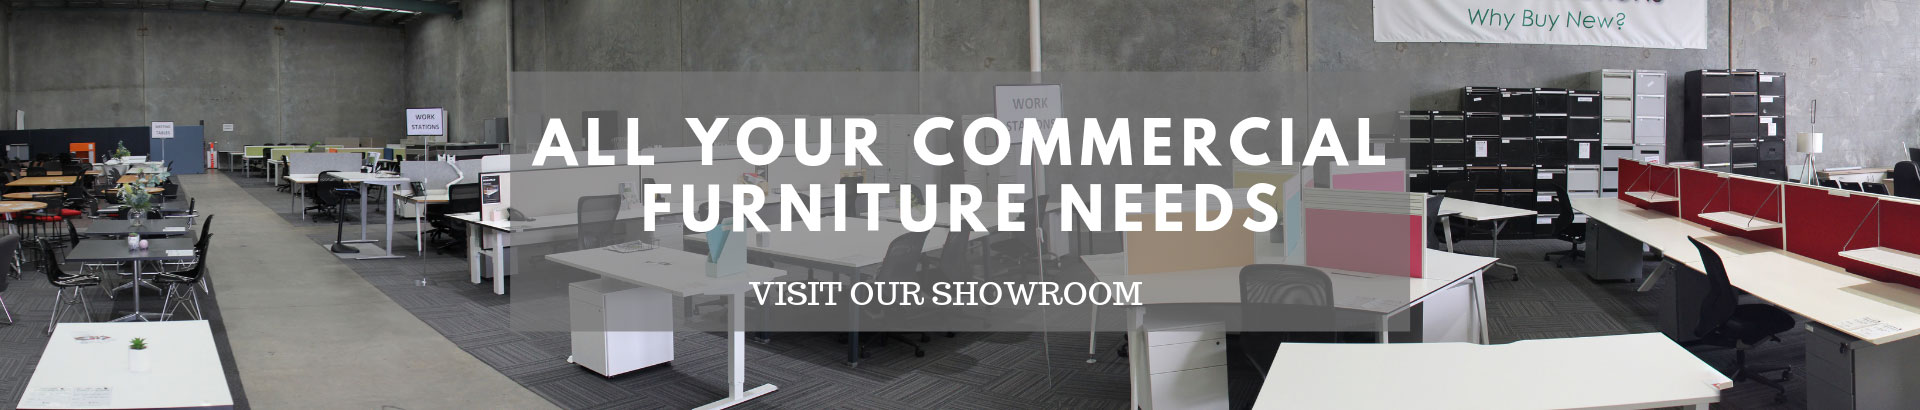 For all your commercial furniture needs visit our showroom